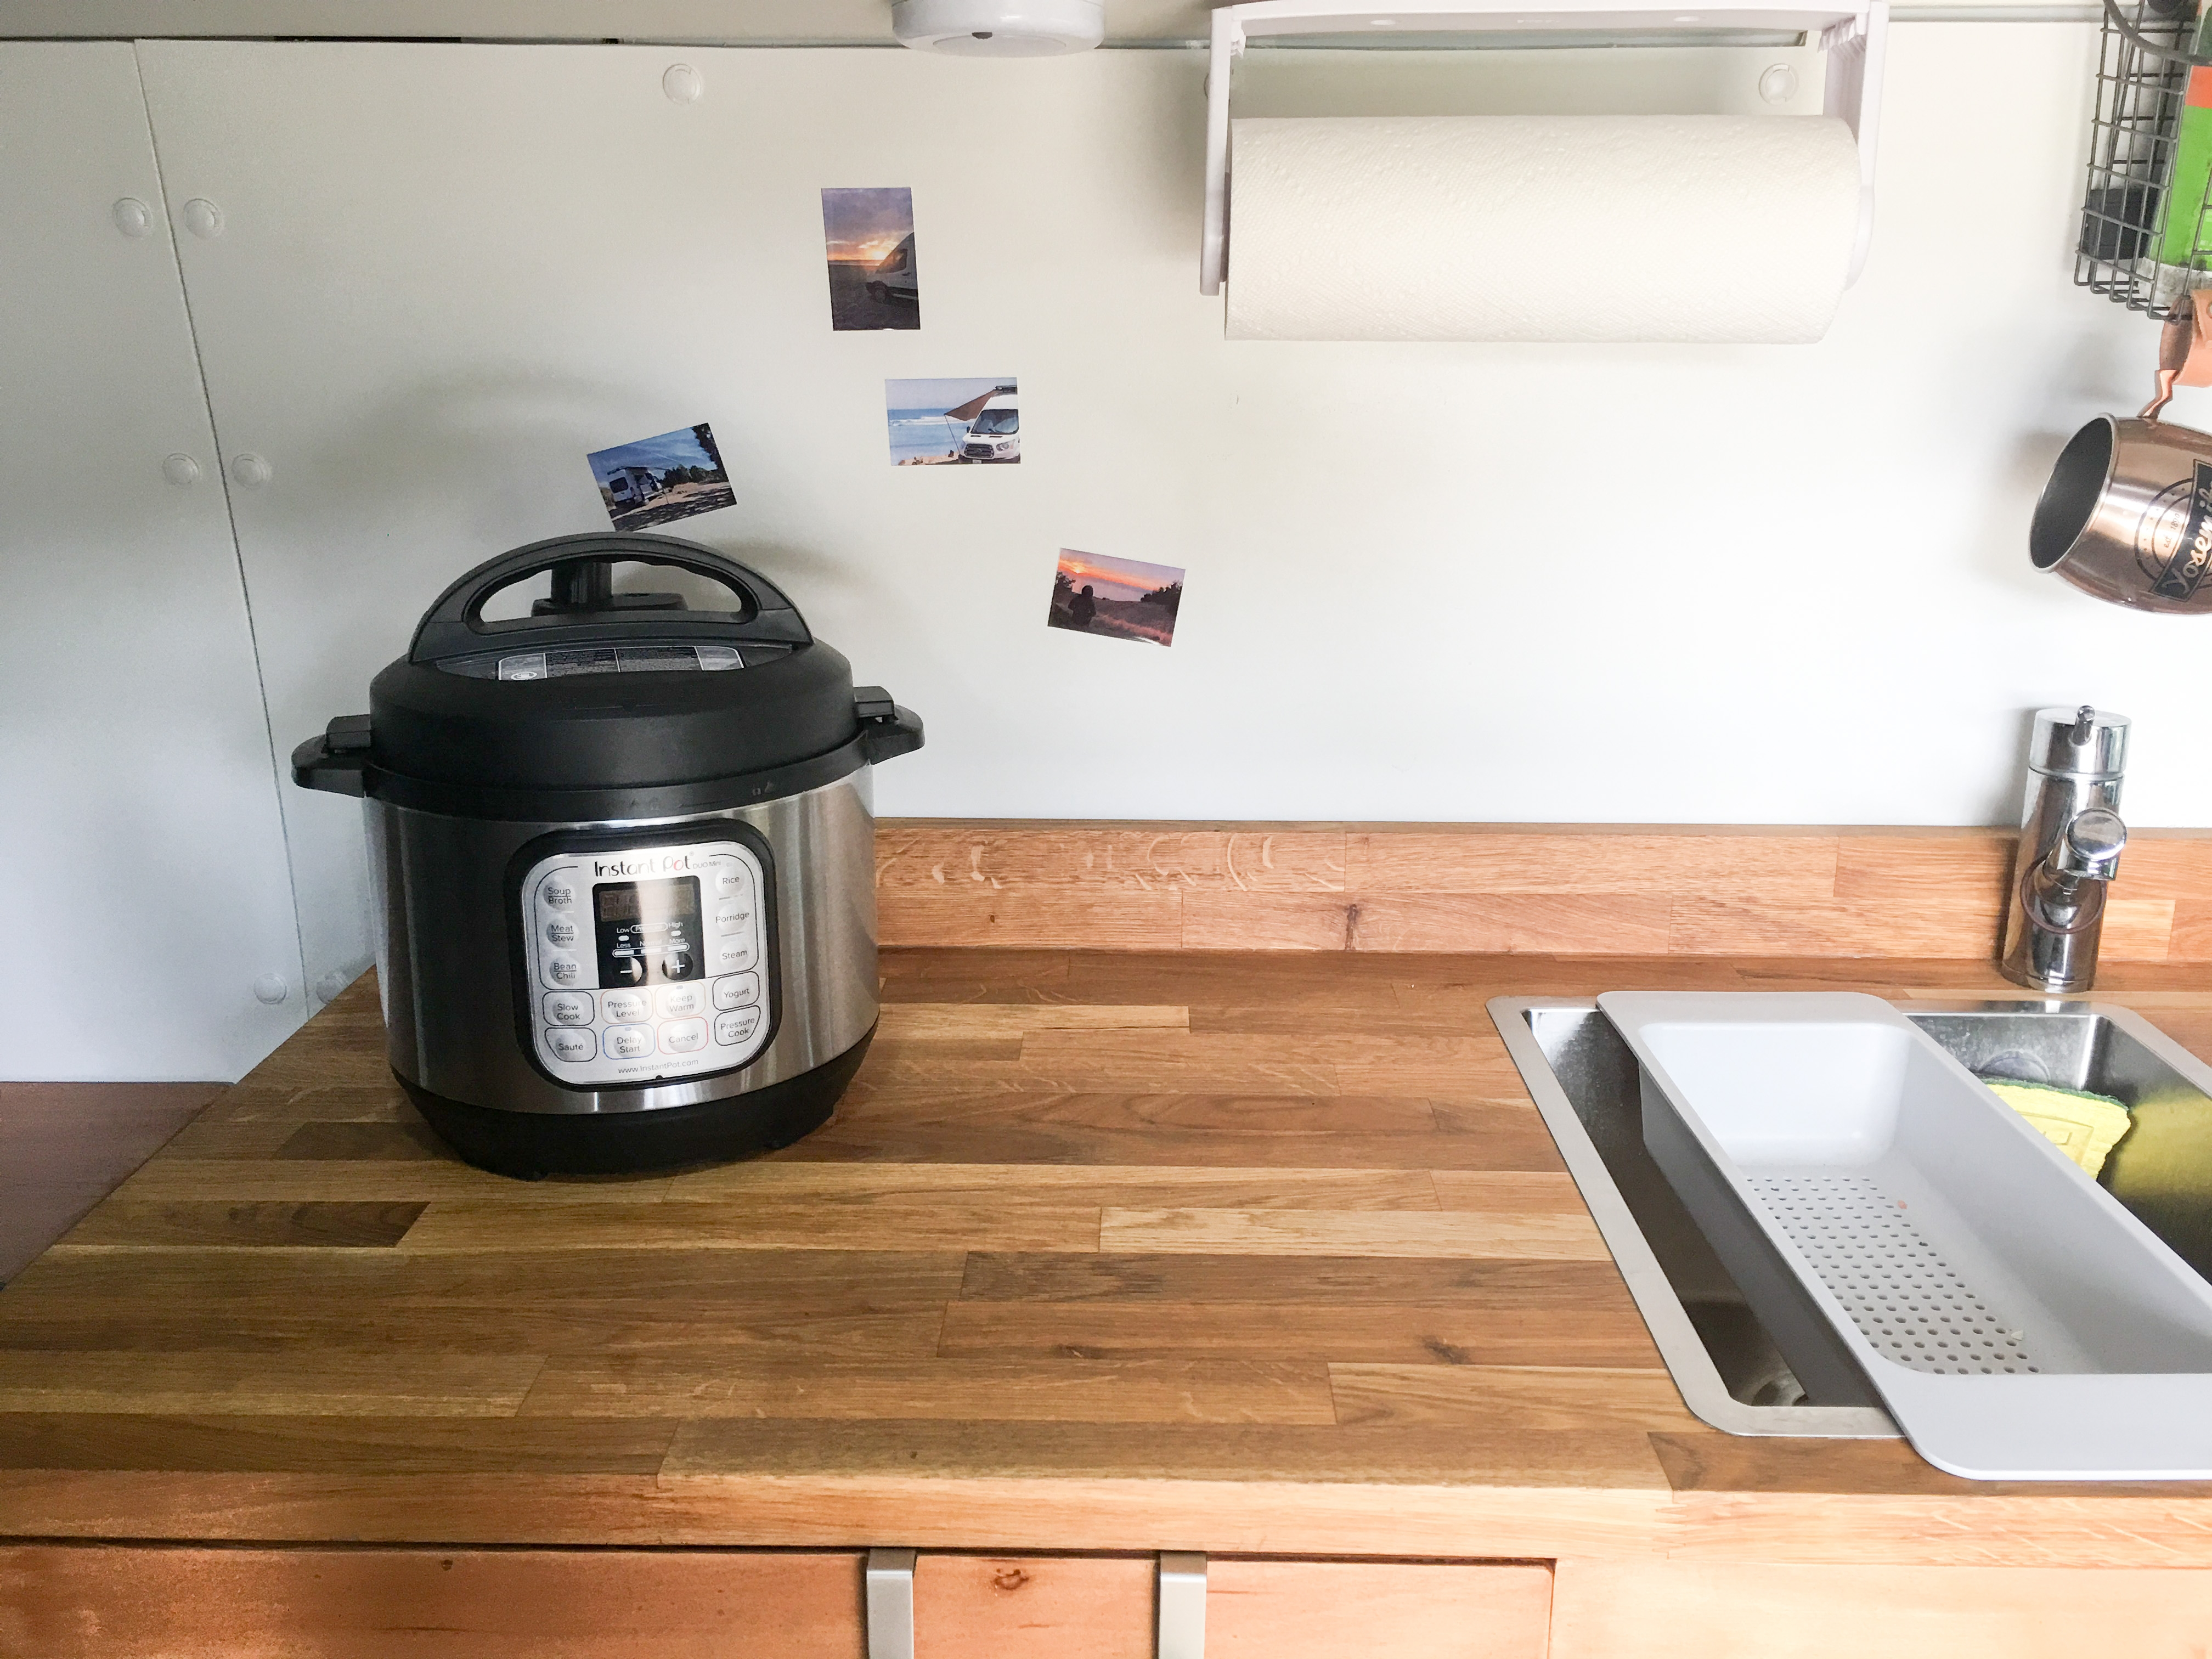 Van Cooking With An Instant Pot - Morey's In Transit